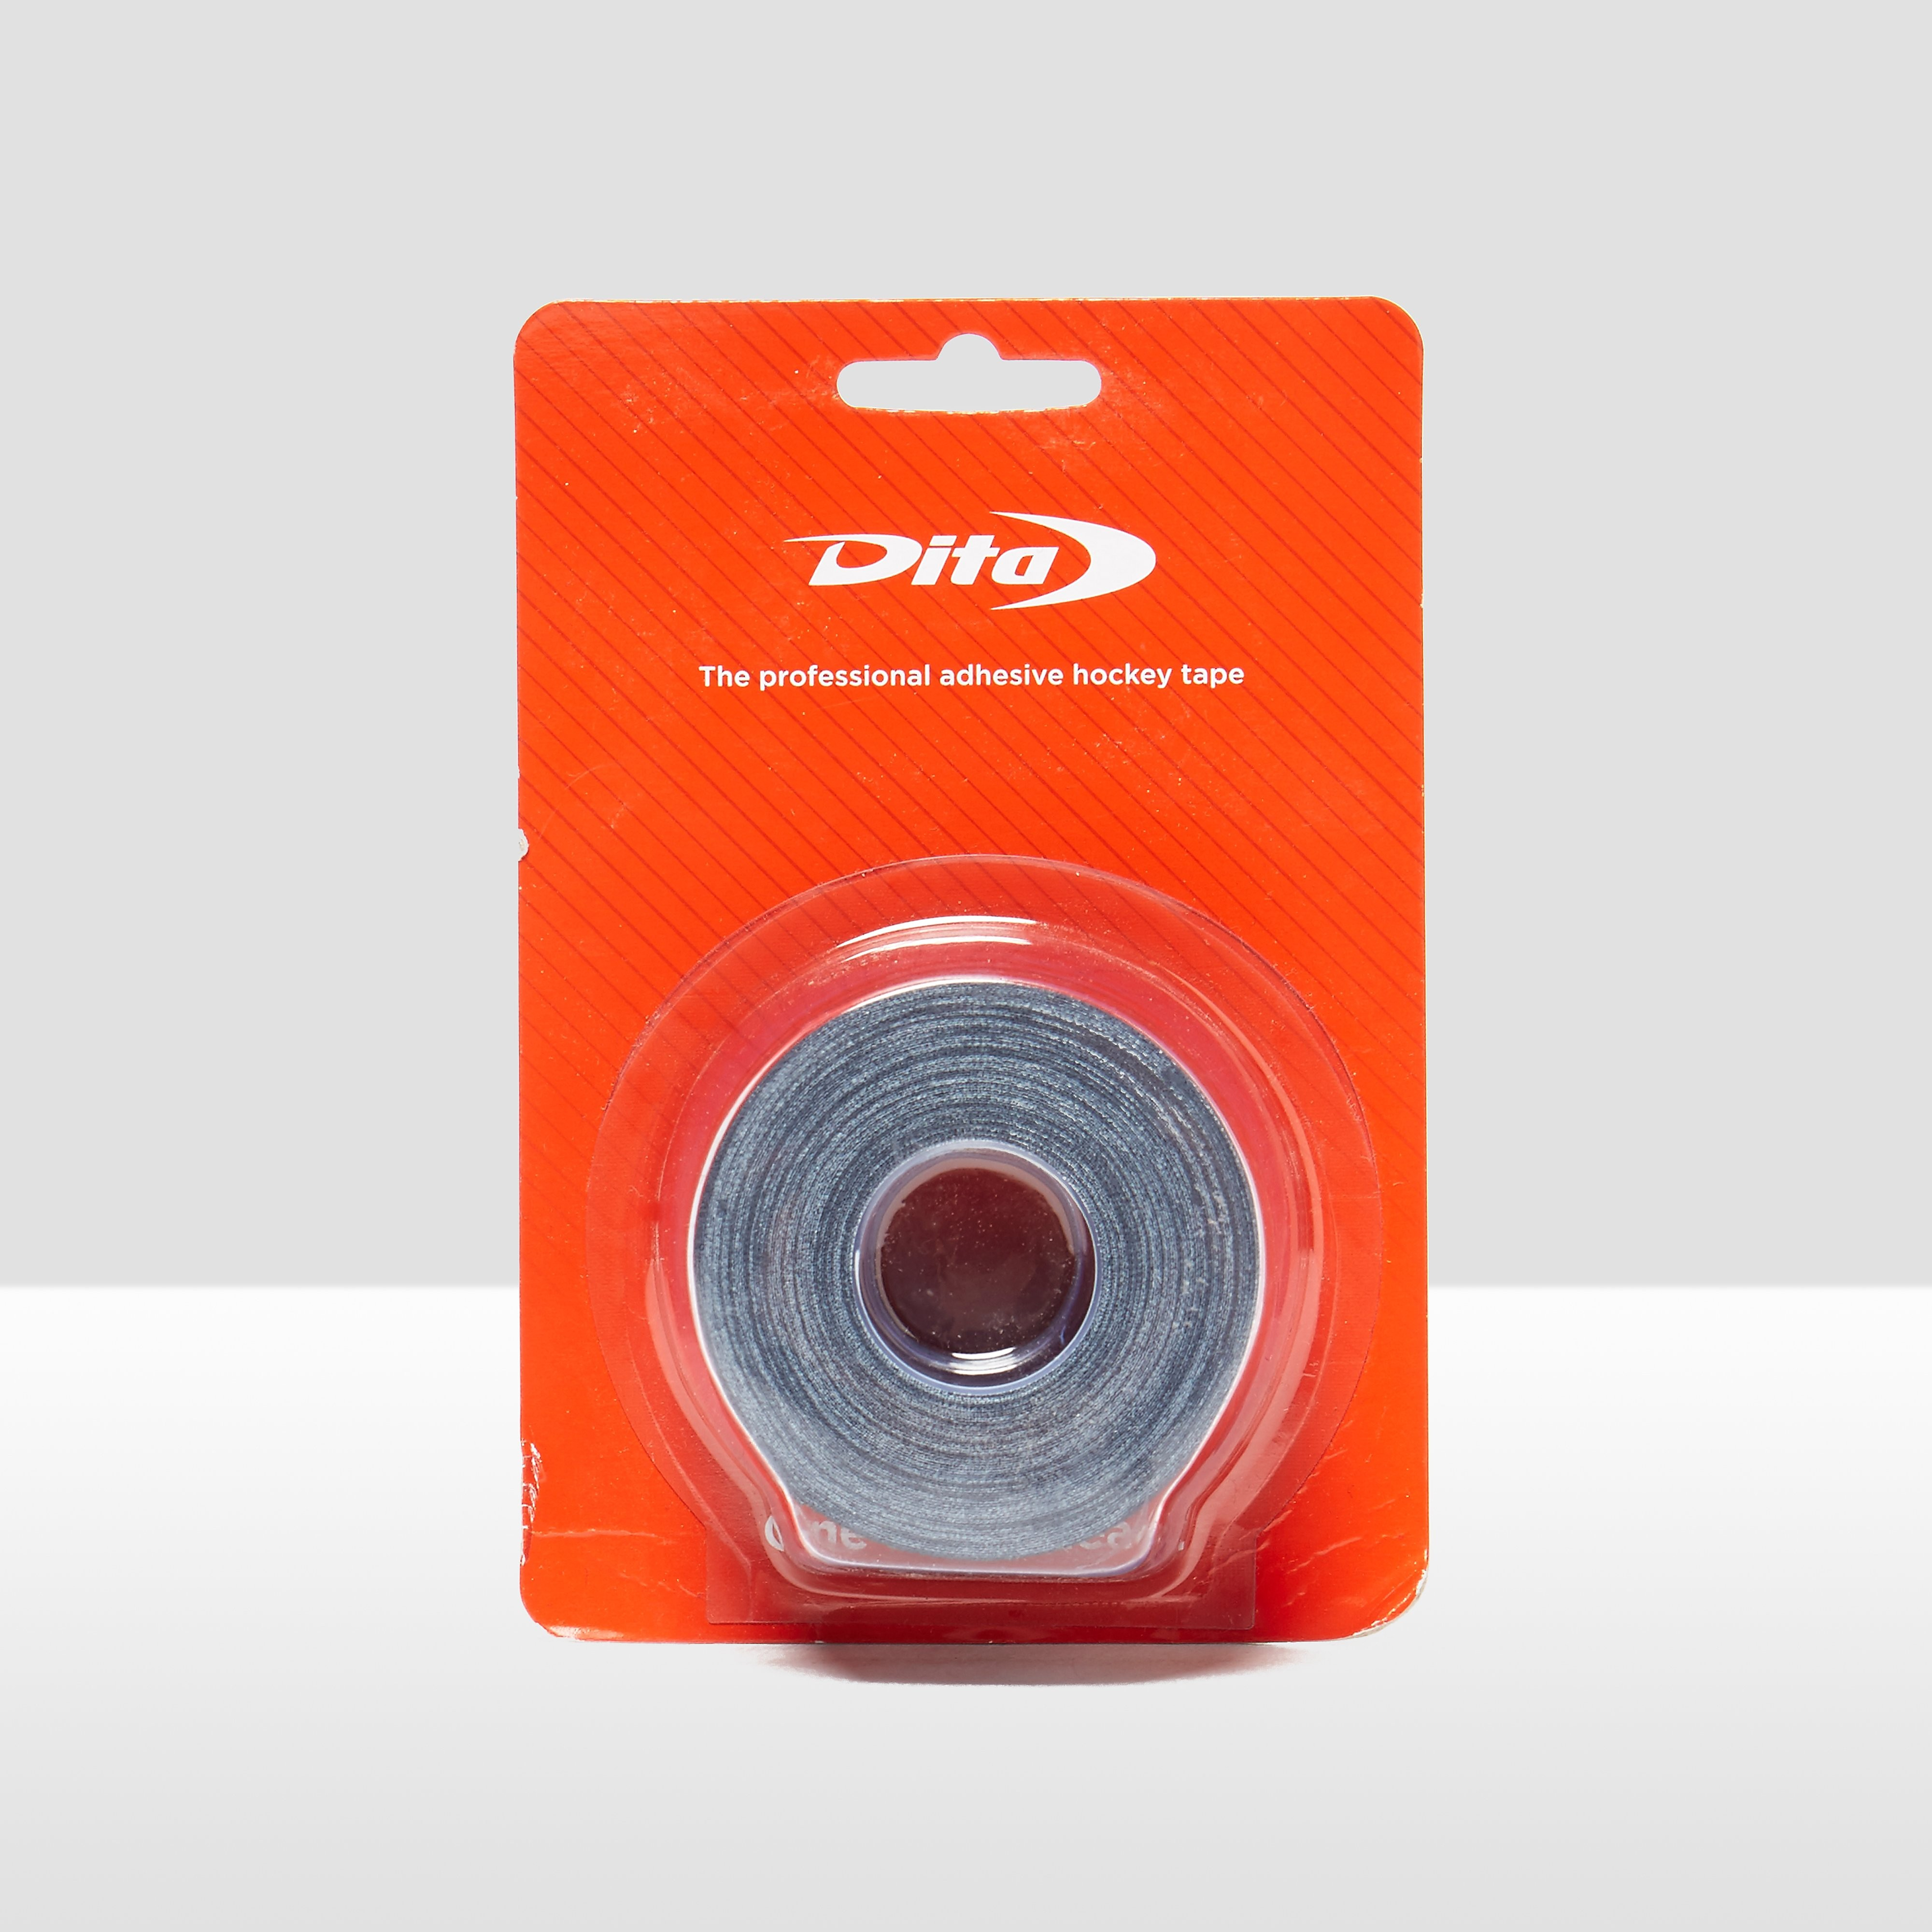 Dita Hockey Stick Tape